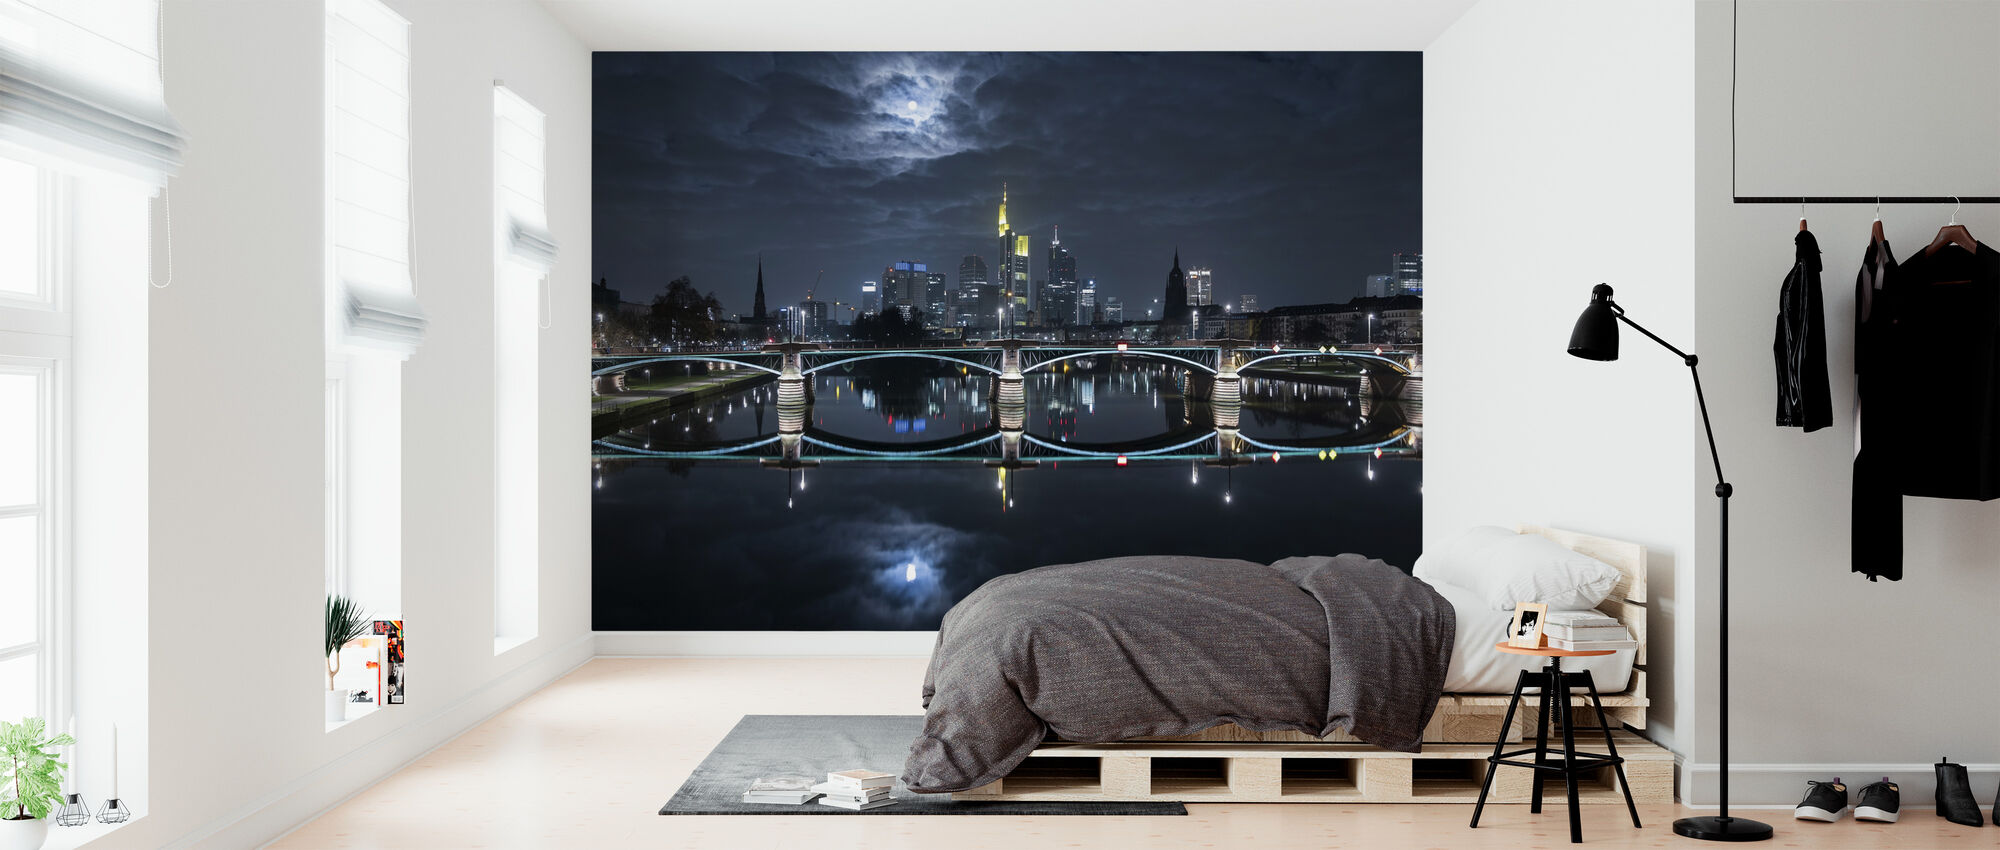 Frankfurt at Full Moon - Wallpaper - Bedroom